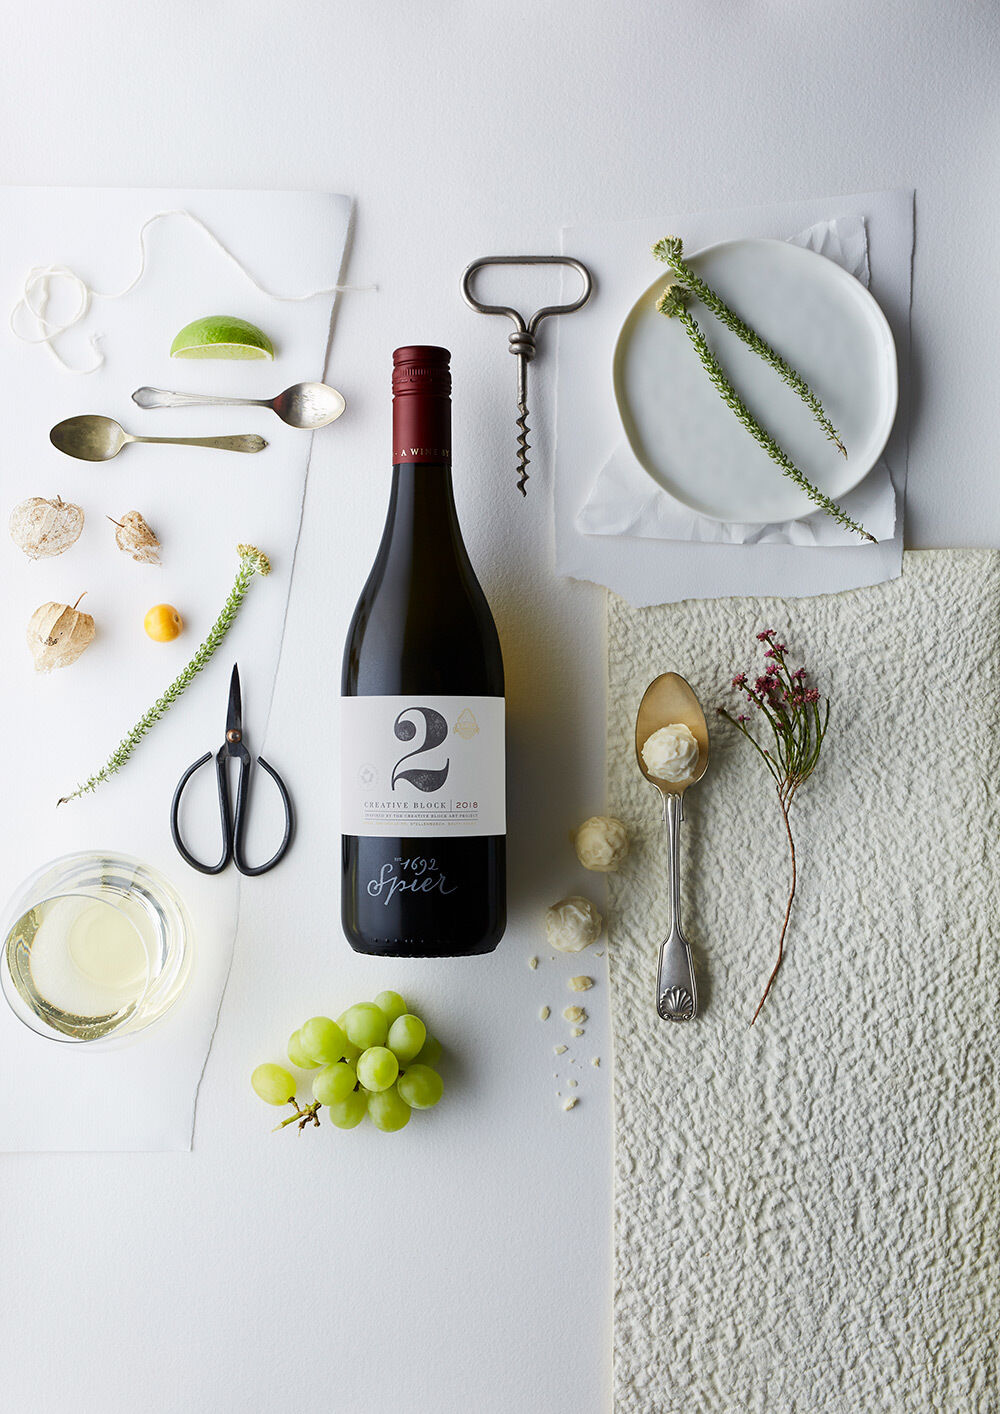 Spier wins two Grand Cru National Champion at National Wine Challenge Top 100 SA Wines